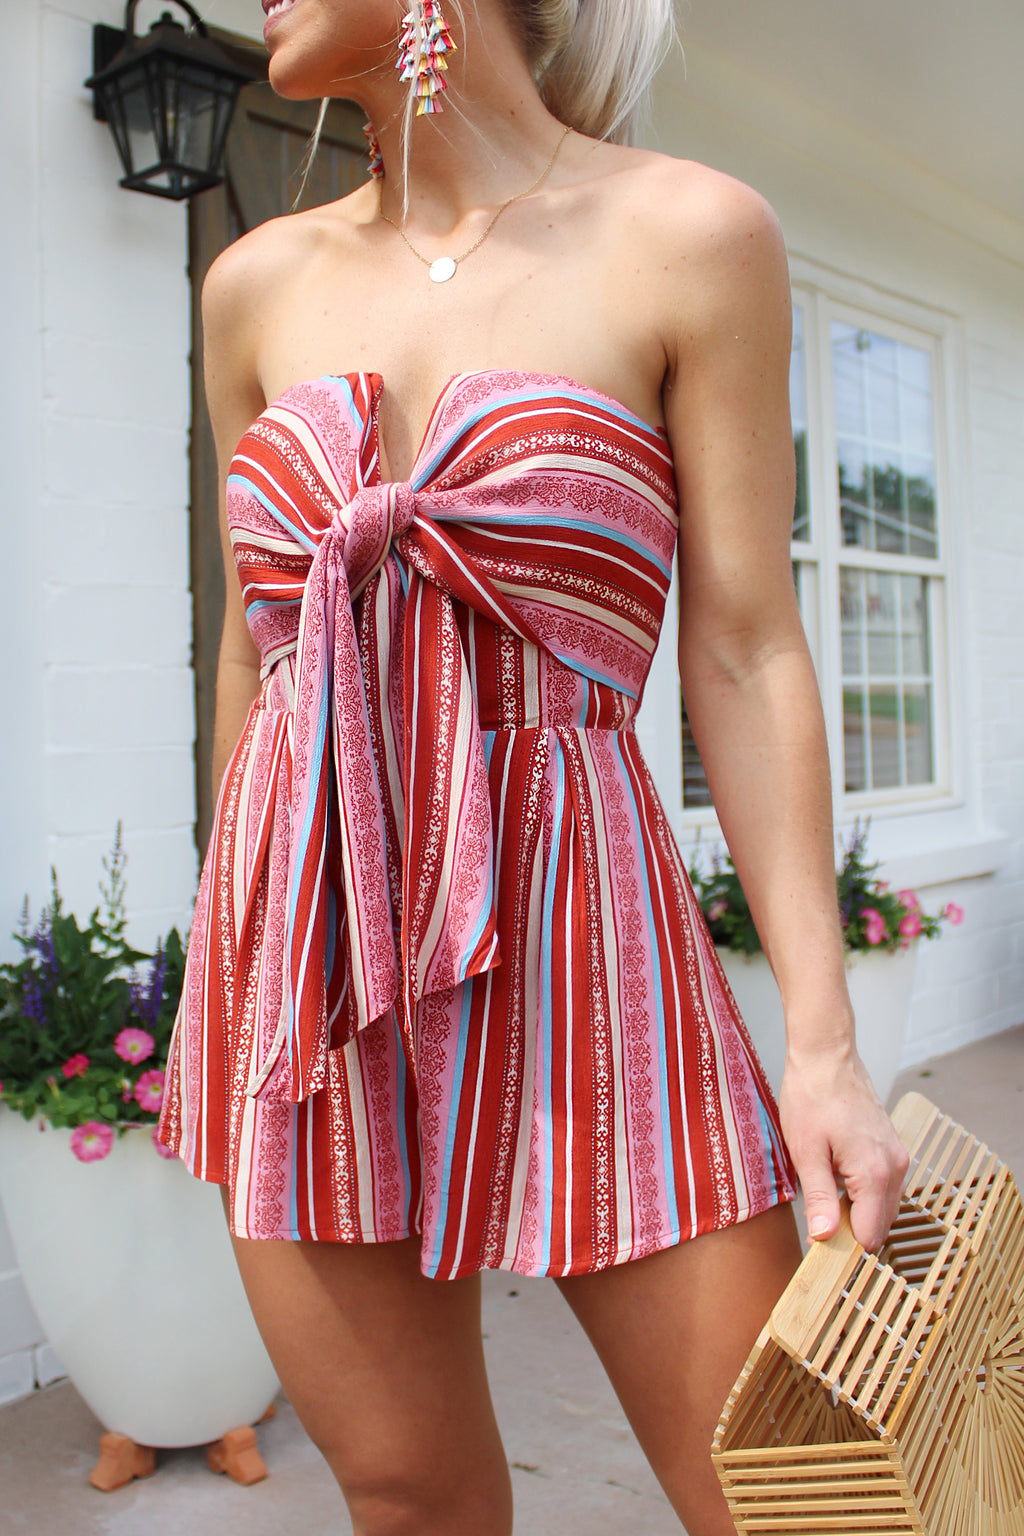 Touch The Sky Red Striped Strapless Romper, Cute Red Tie Front Printed Romper, Cute 4th Of July Outfit - Kendry Collection Boutique